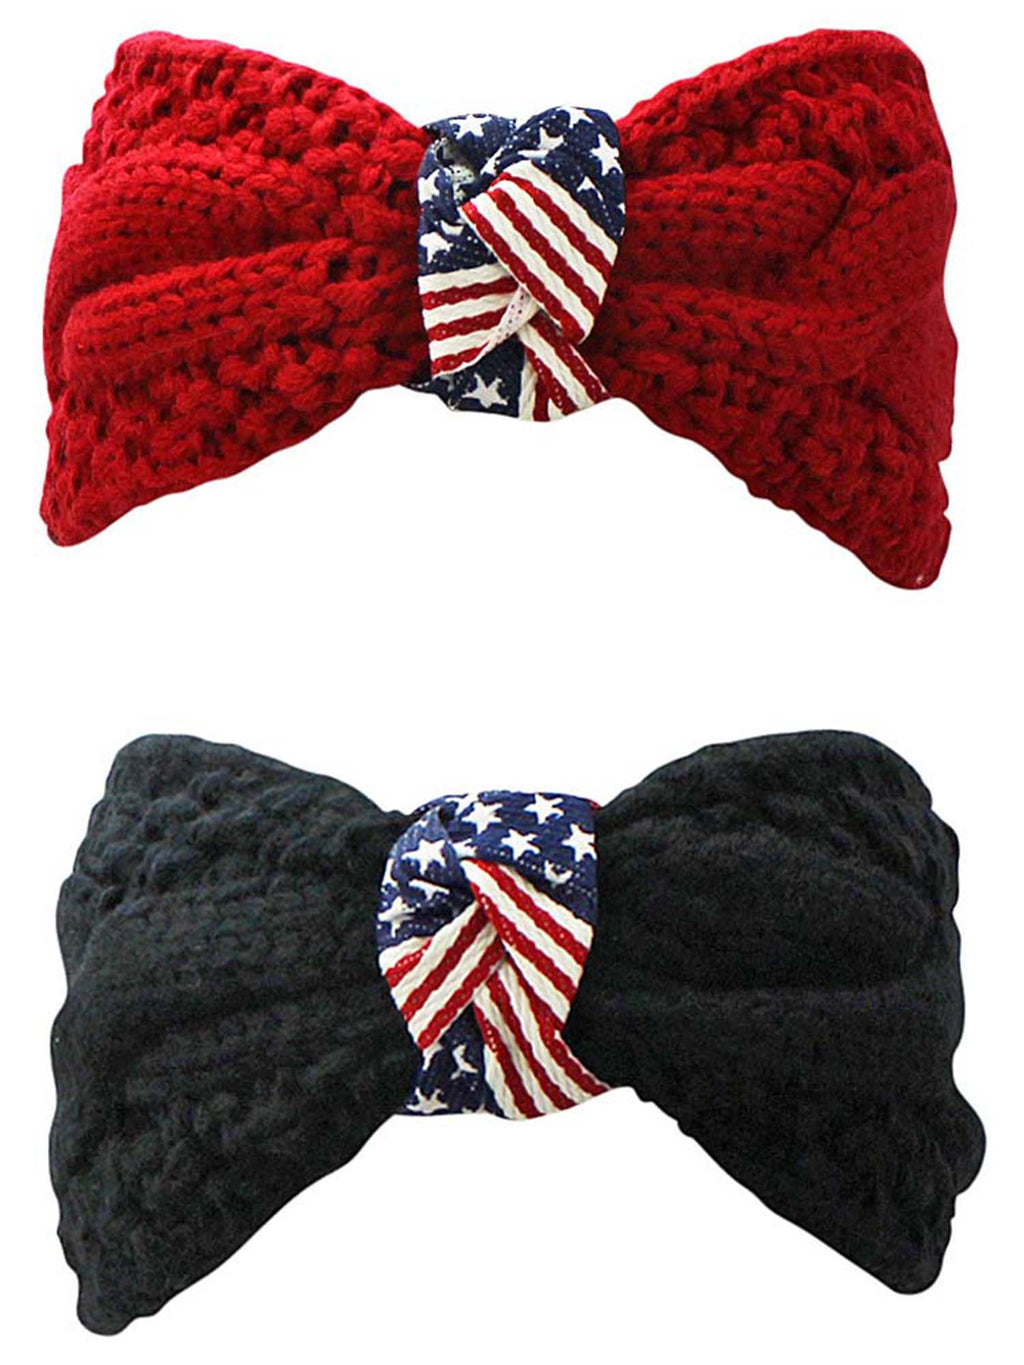 Black & Red 2-Pack Winter Knit American Flag Headbands